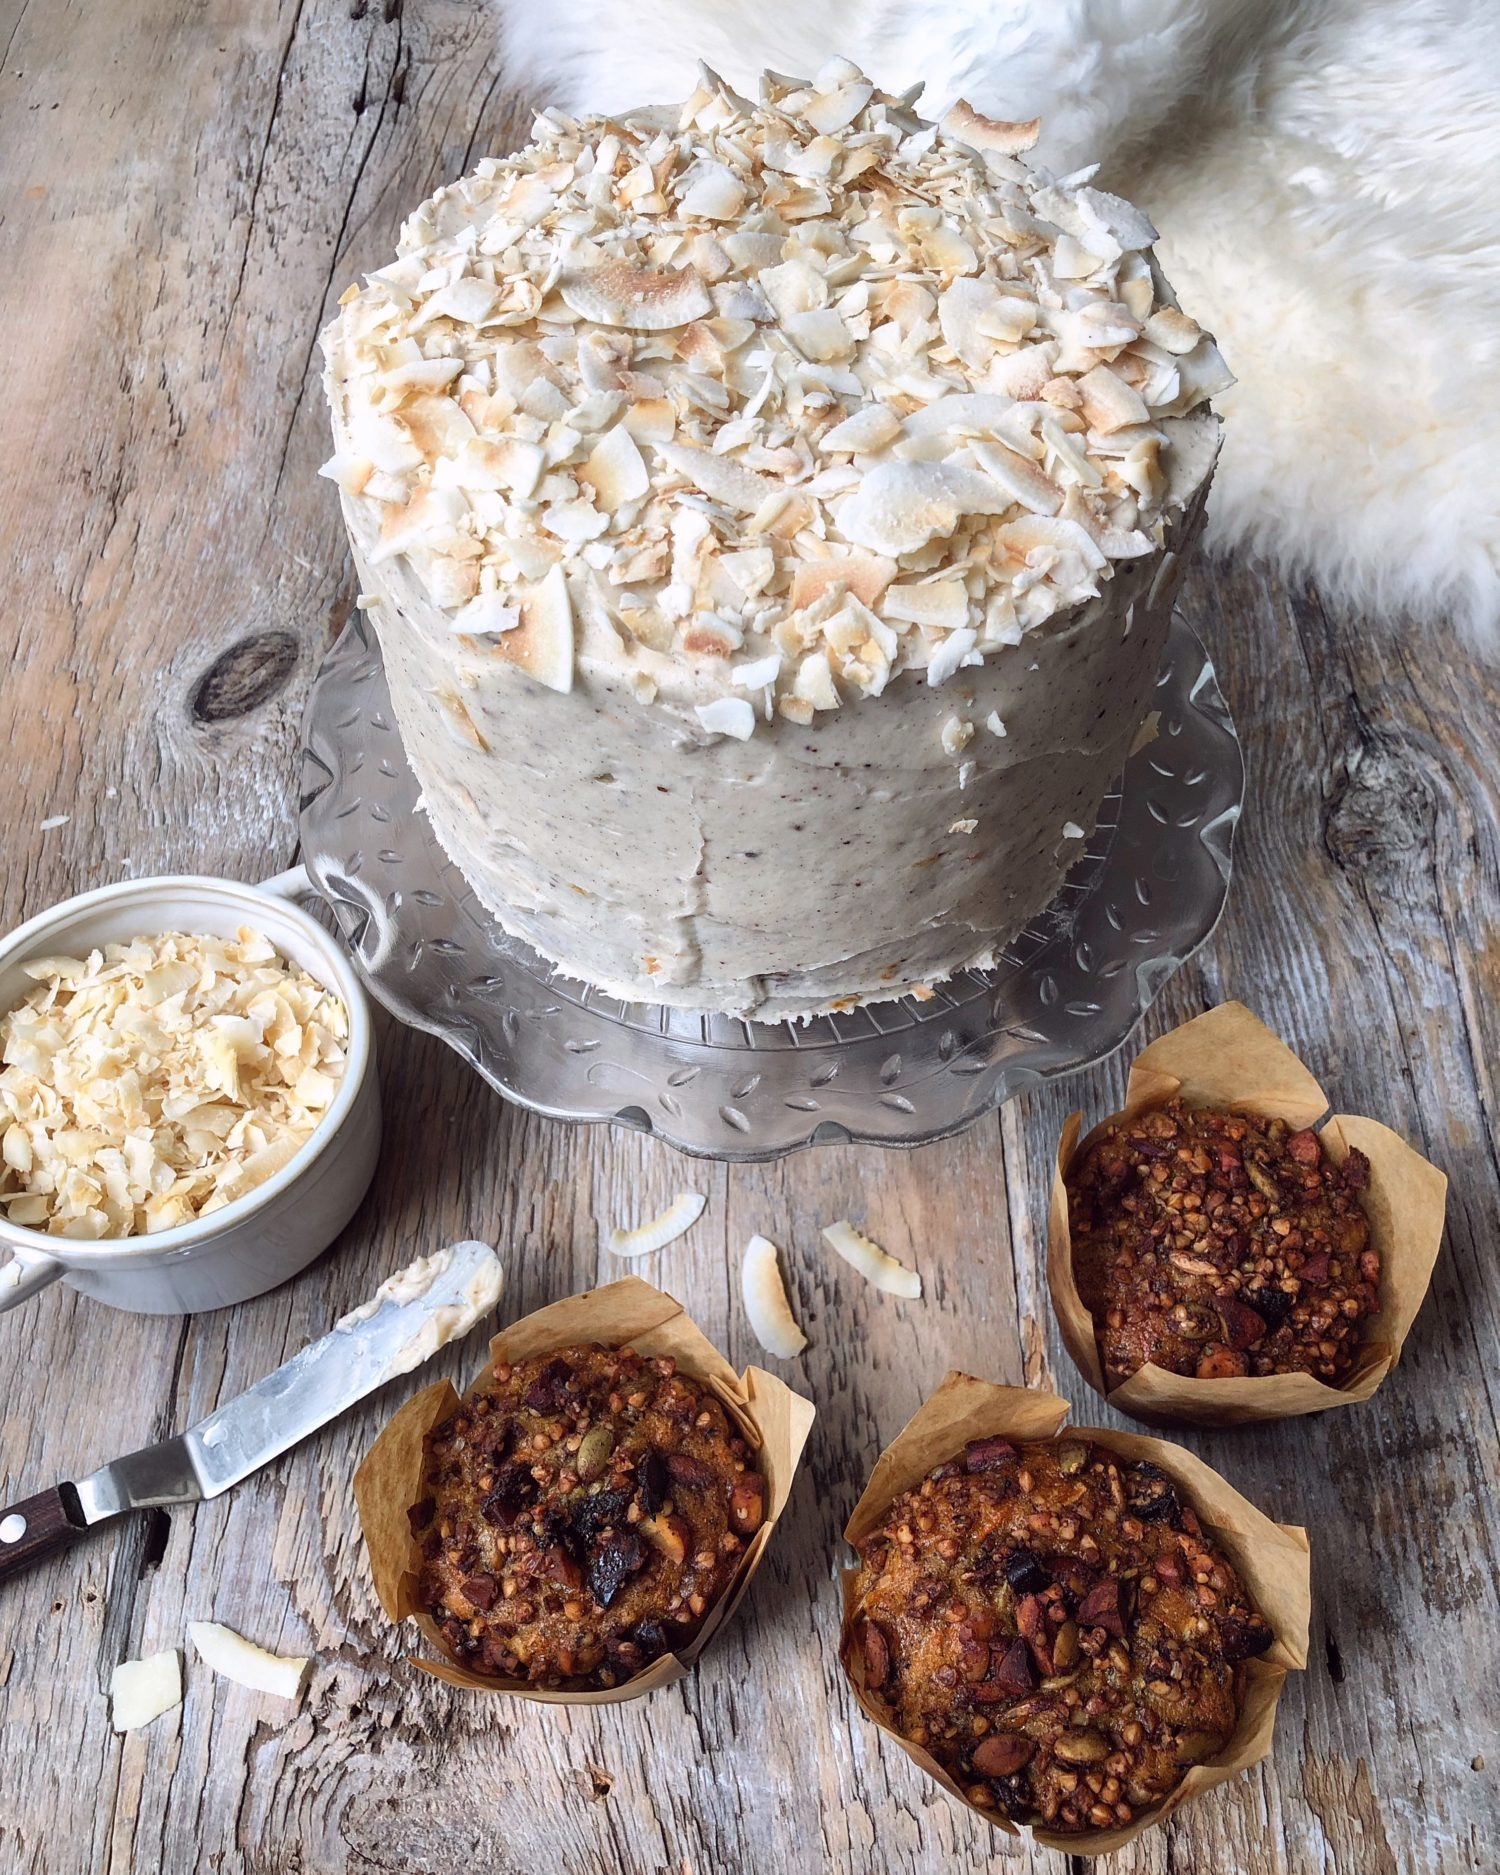 Cardamom Carrot Cake with allspice Cream Cheese Icing